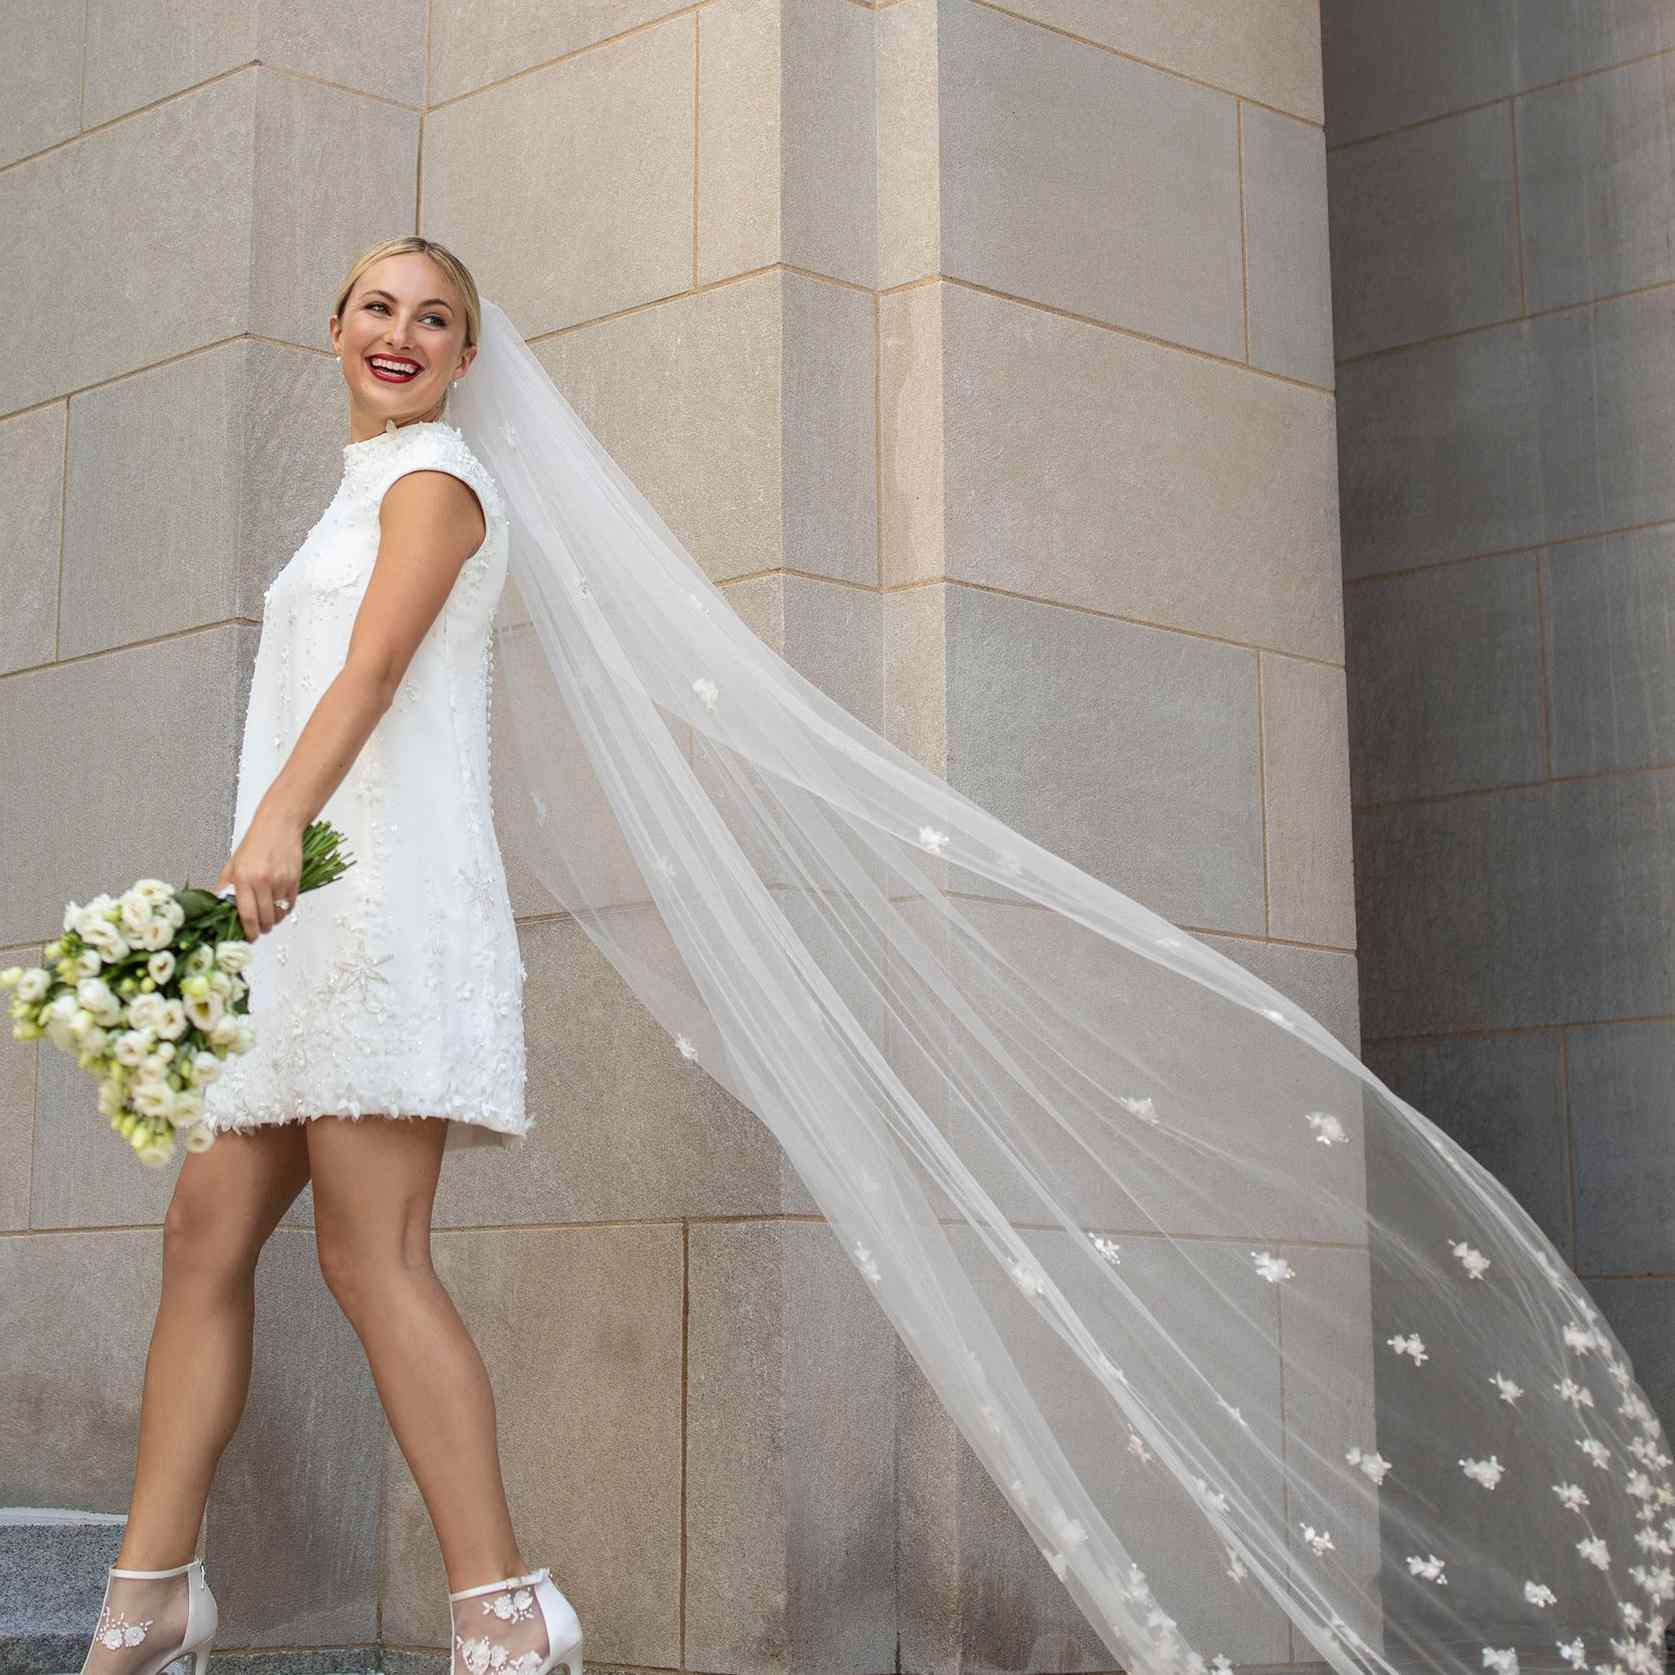 The 30 Best Courthouse Wedding Outfits Of 2020